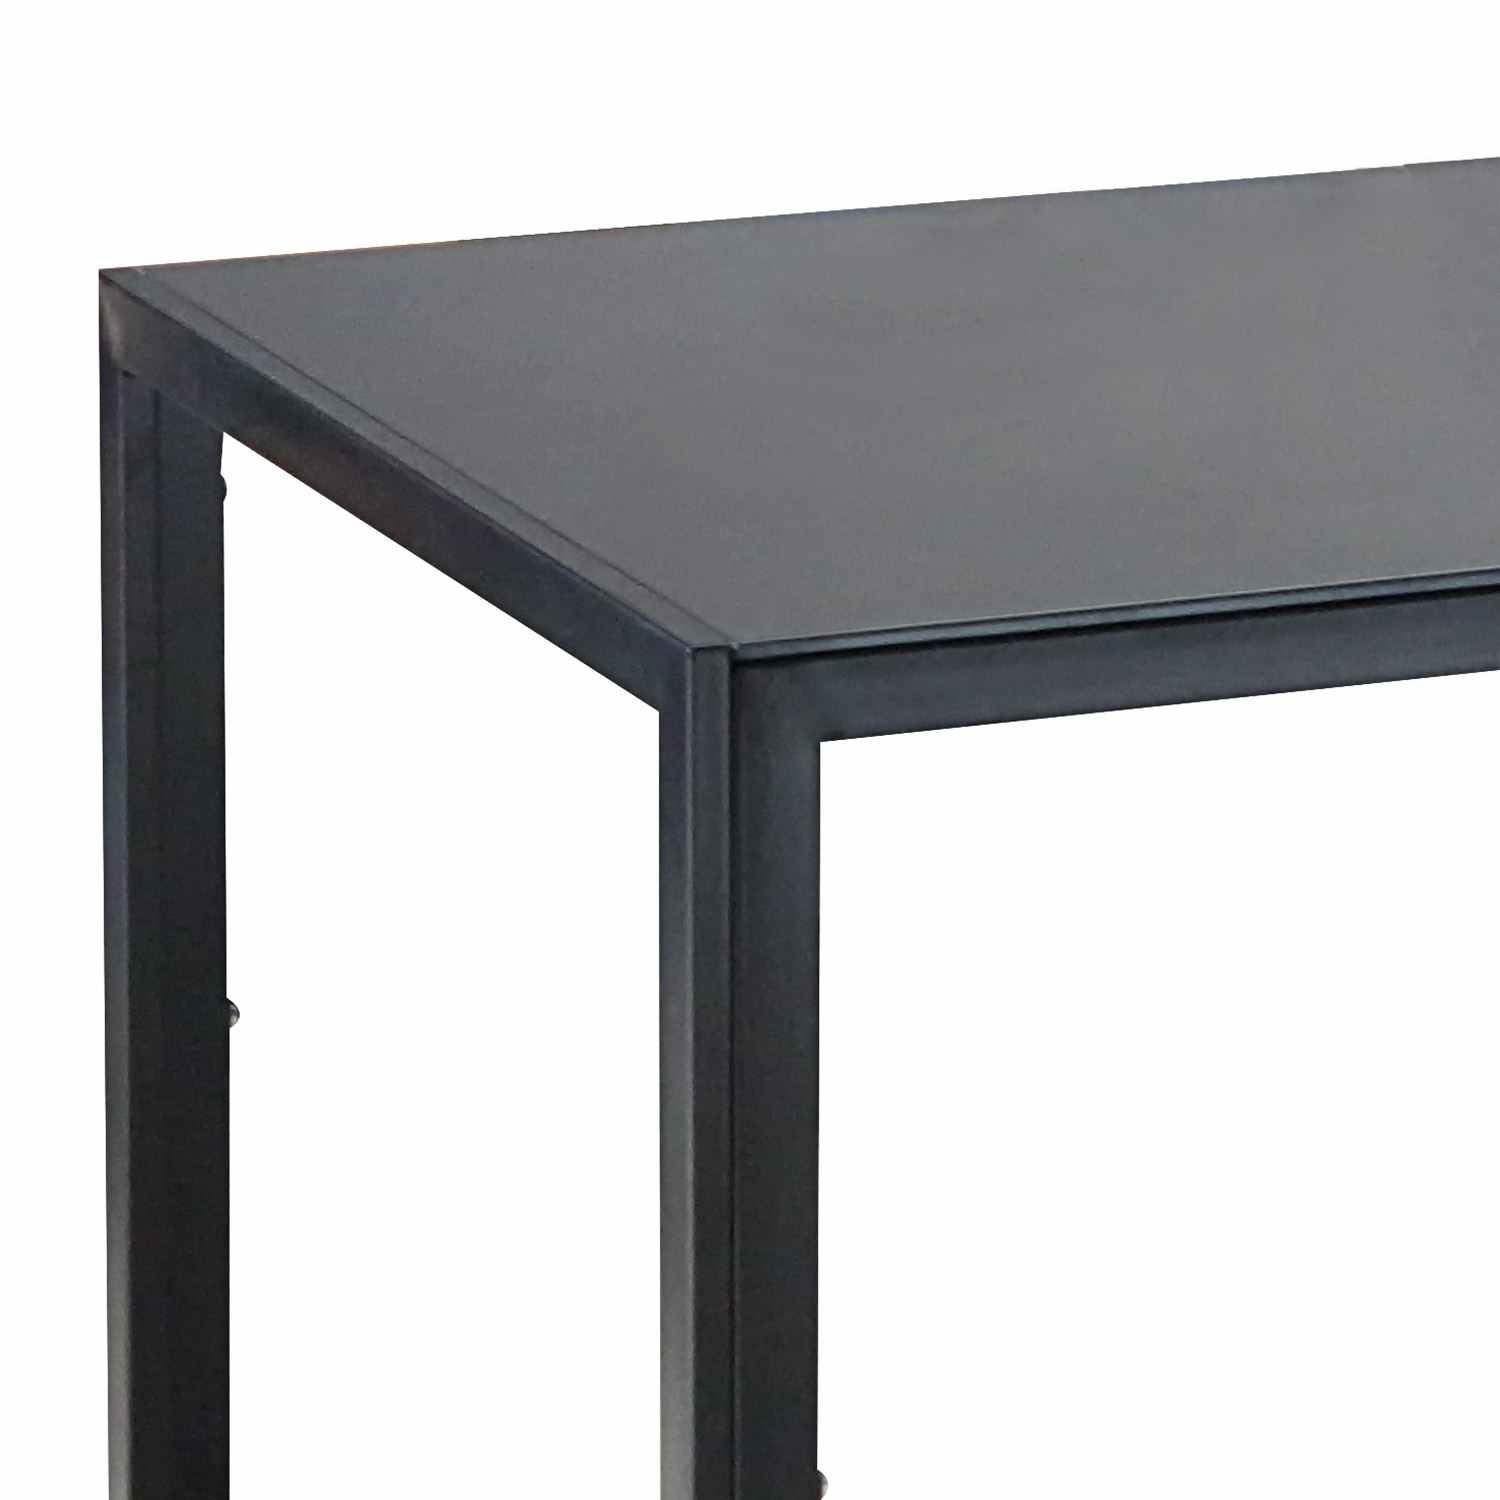 Table a manger noire 15 deco in paris for Deco salle a manger table noire